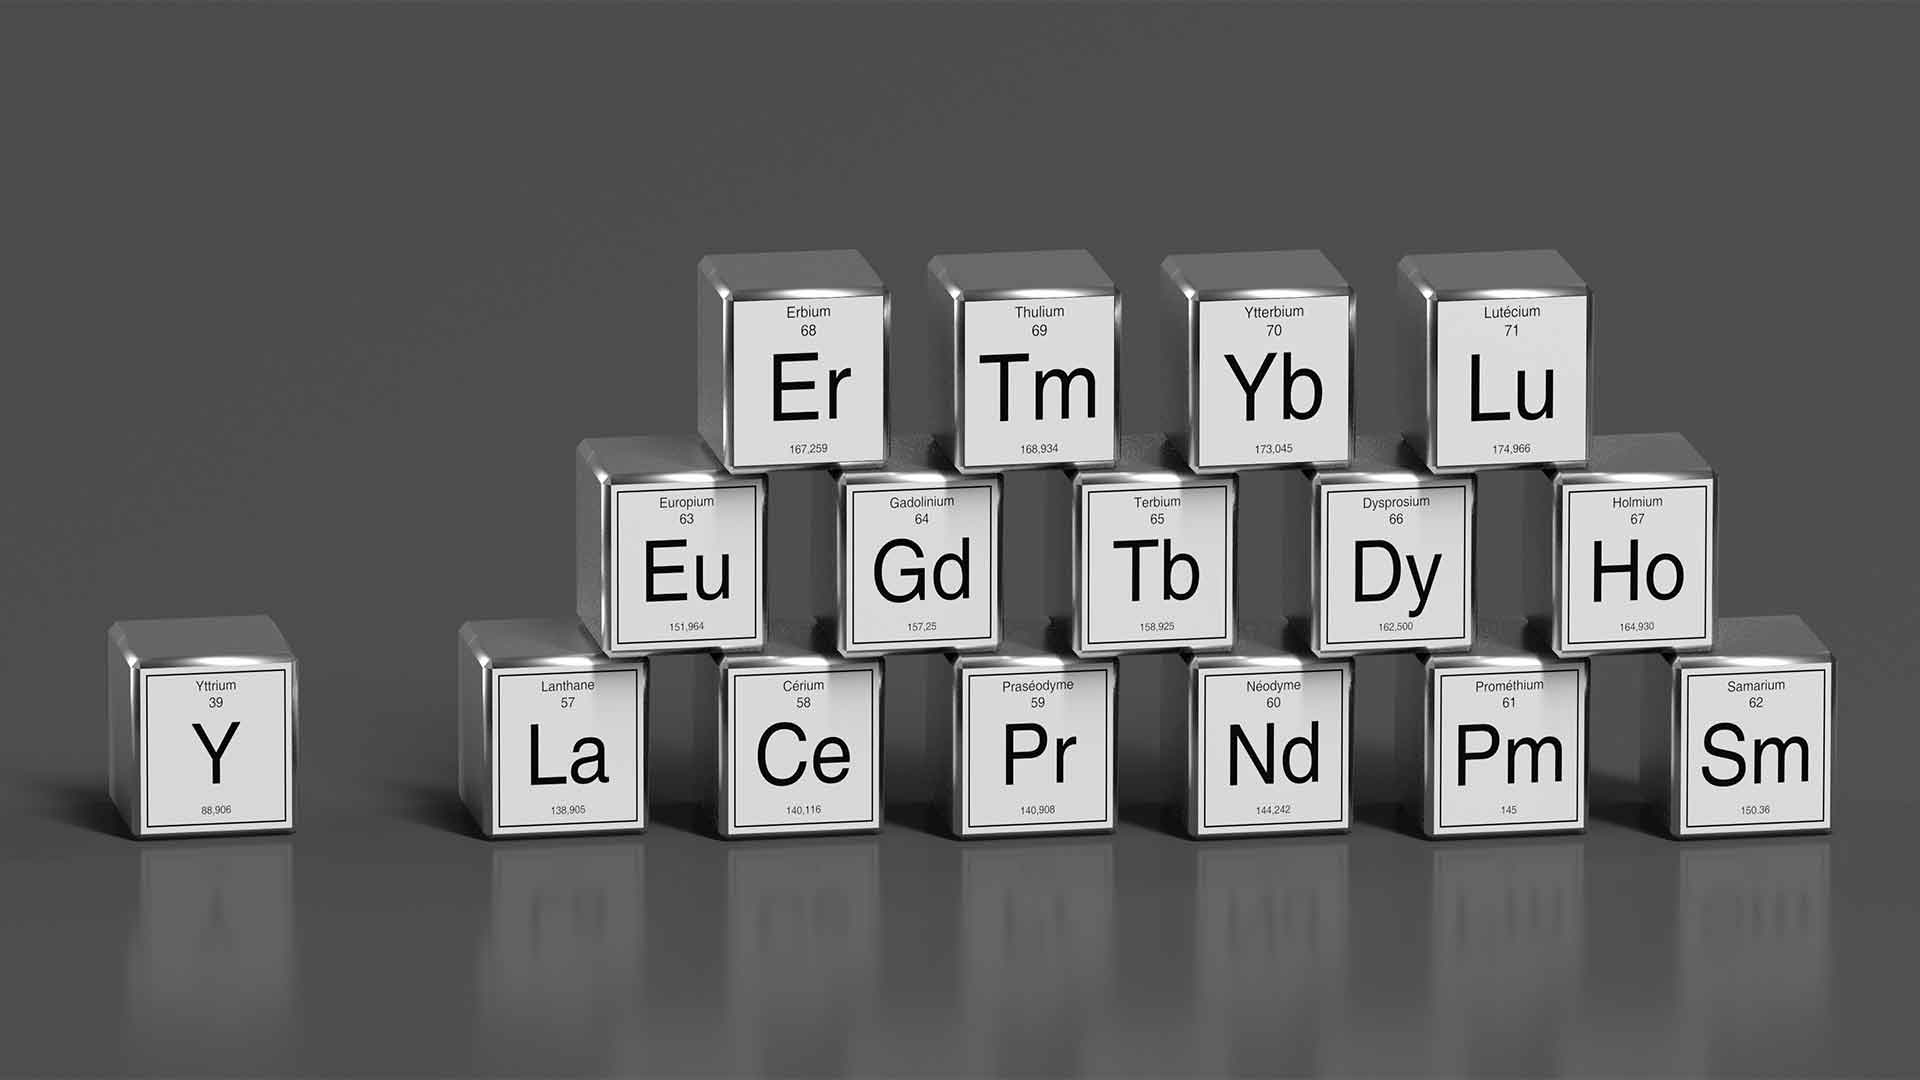 Time for Boron to Join the Rare Earths Club